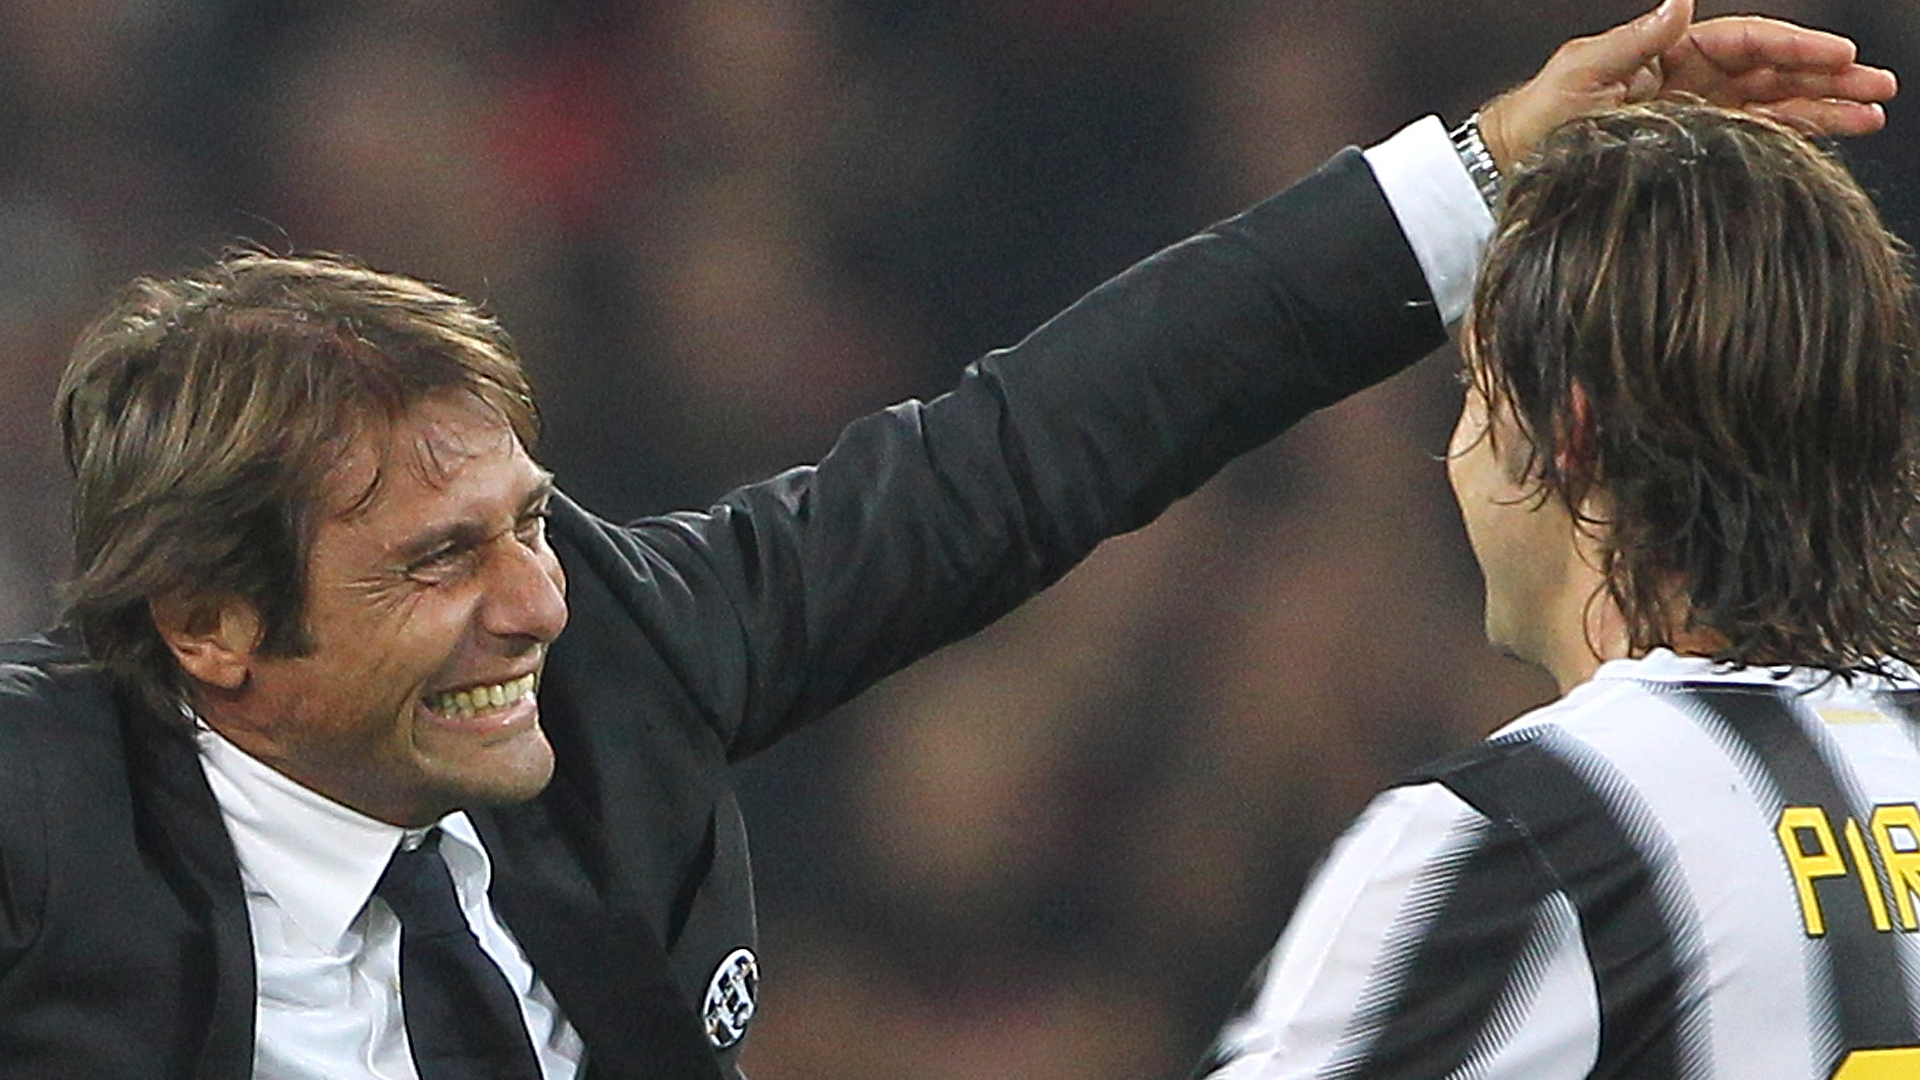 Pirlo inspired by Conte but aware of Inter coach's mind games ahead of Derby d'Italia